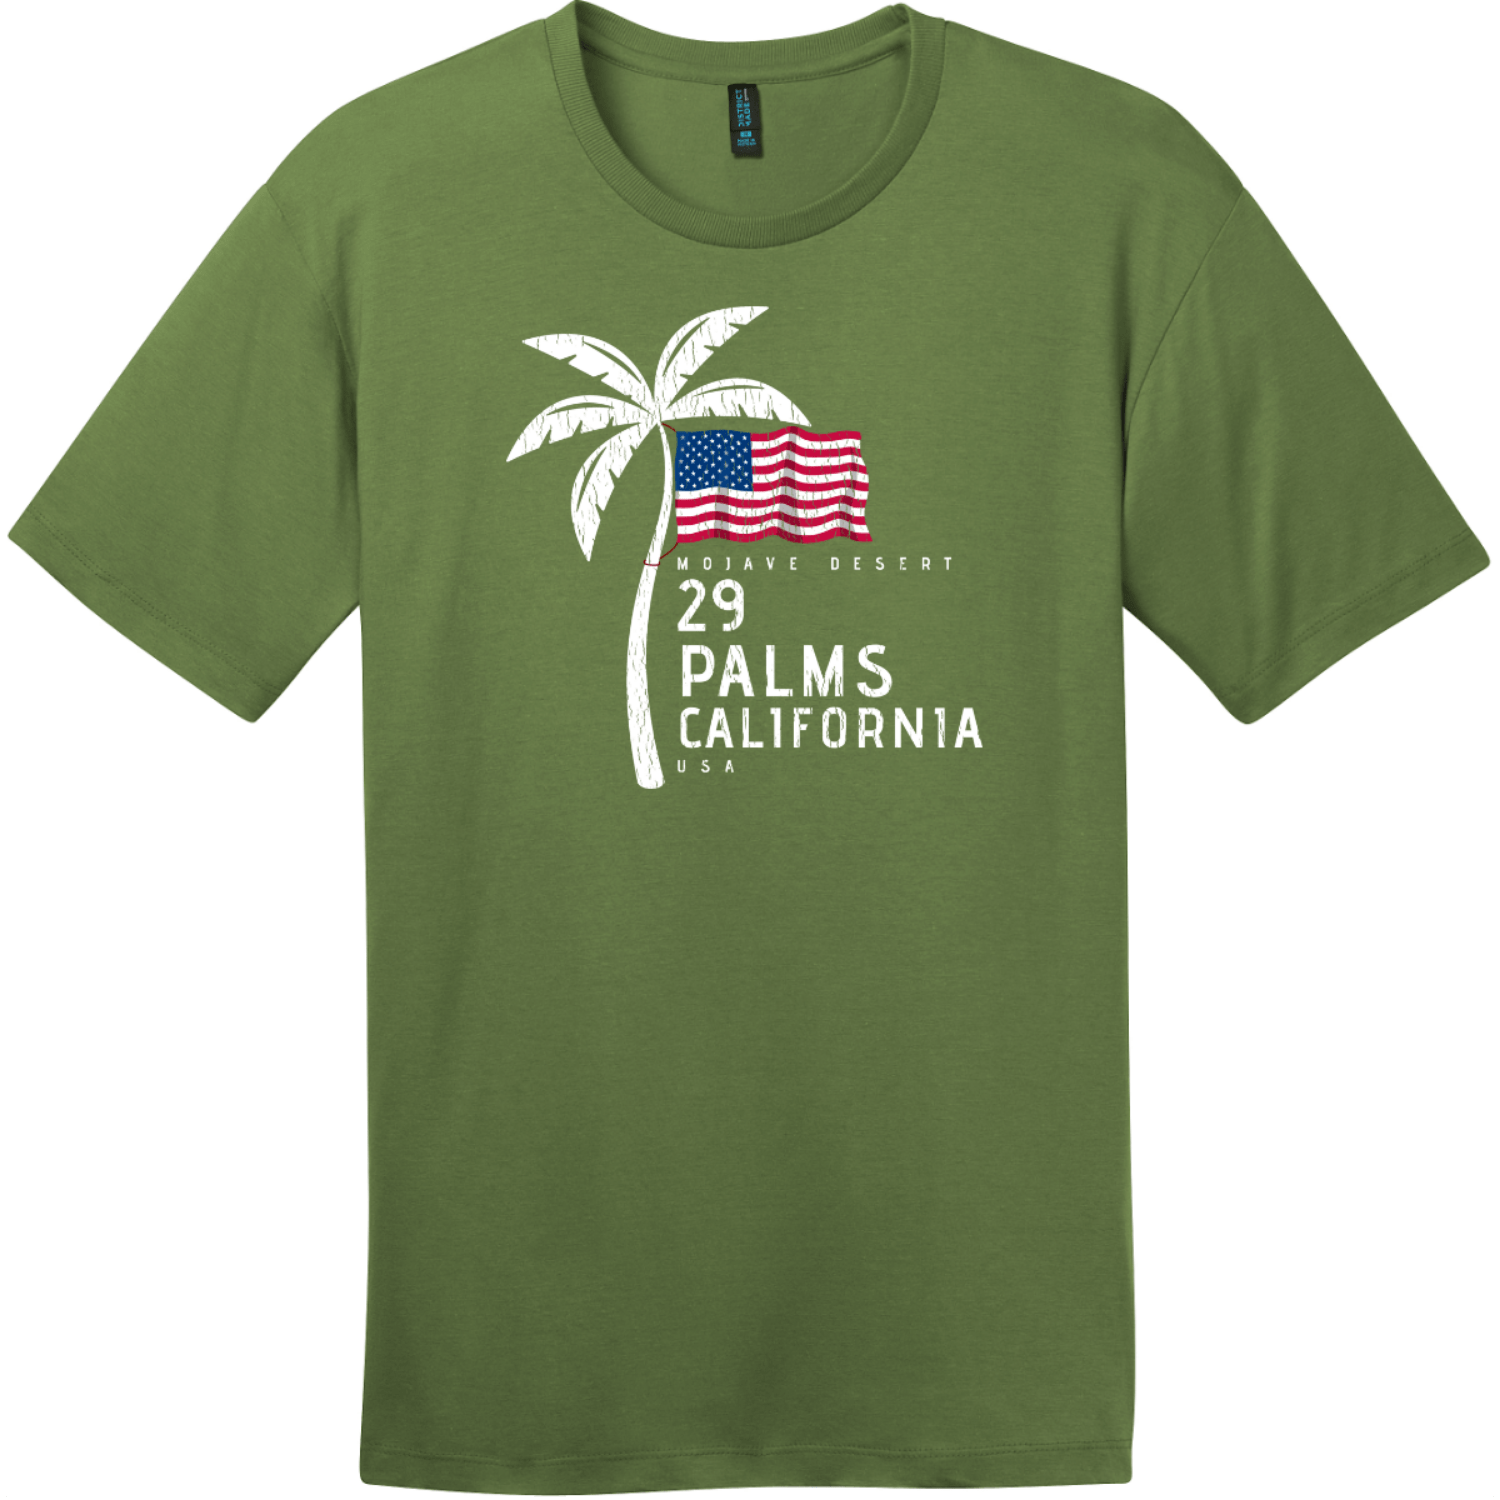 29 Palms California American Flag Palm Tree T-Shirt Fresh Fatigue District Perfect Weight Tee DT104